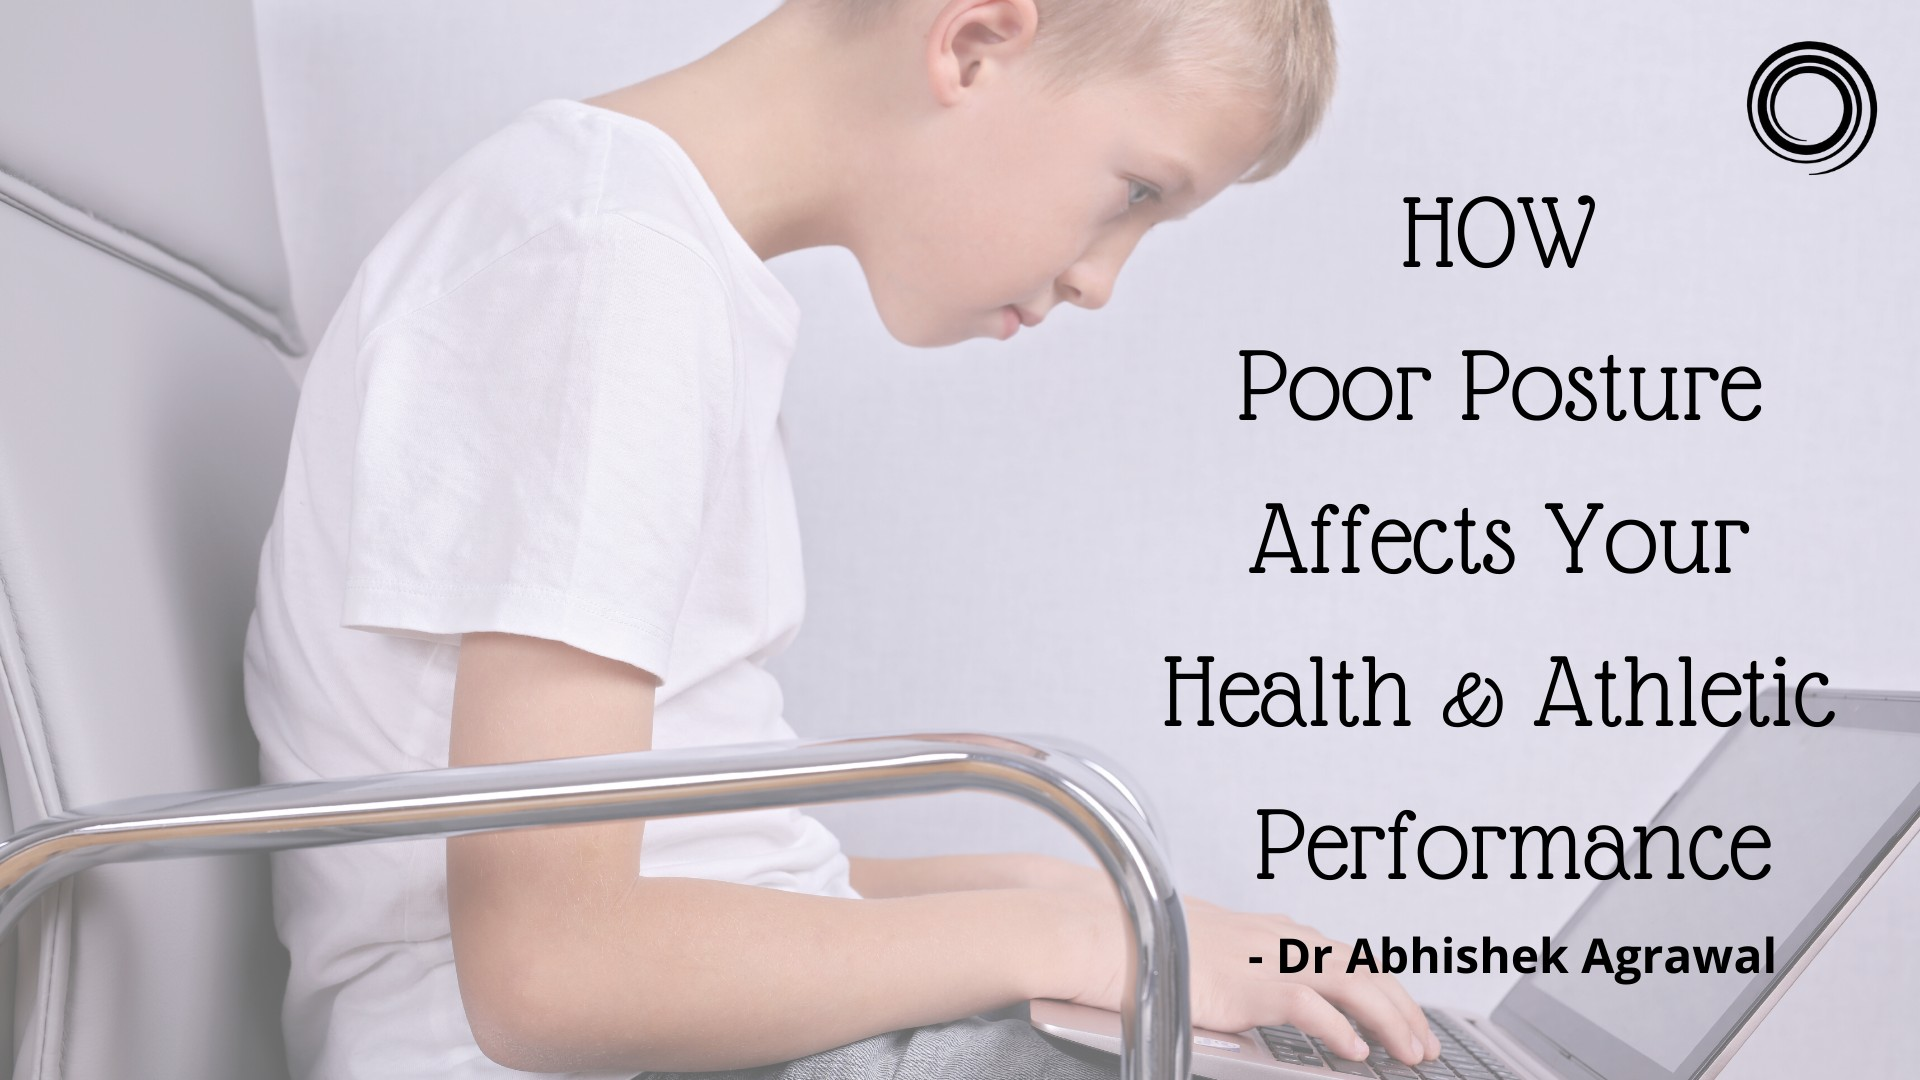 HOW Poor Posture Affects Your Health & Athletic Performance